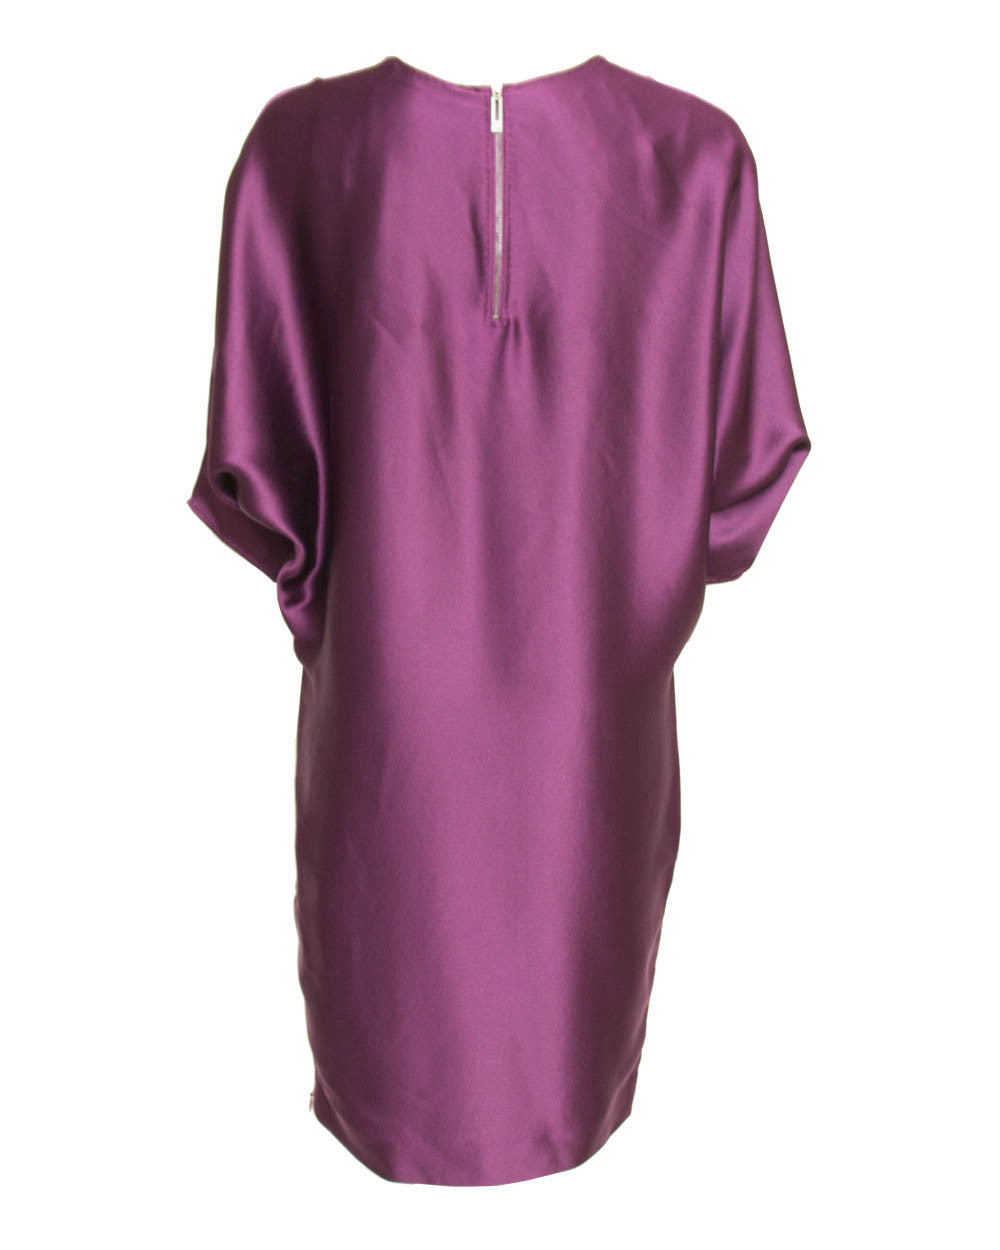 Amanda Wakely T Shirt Dress